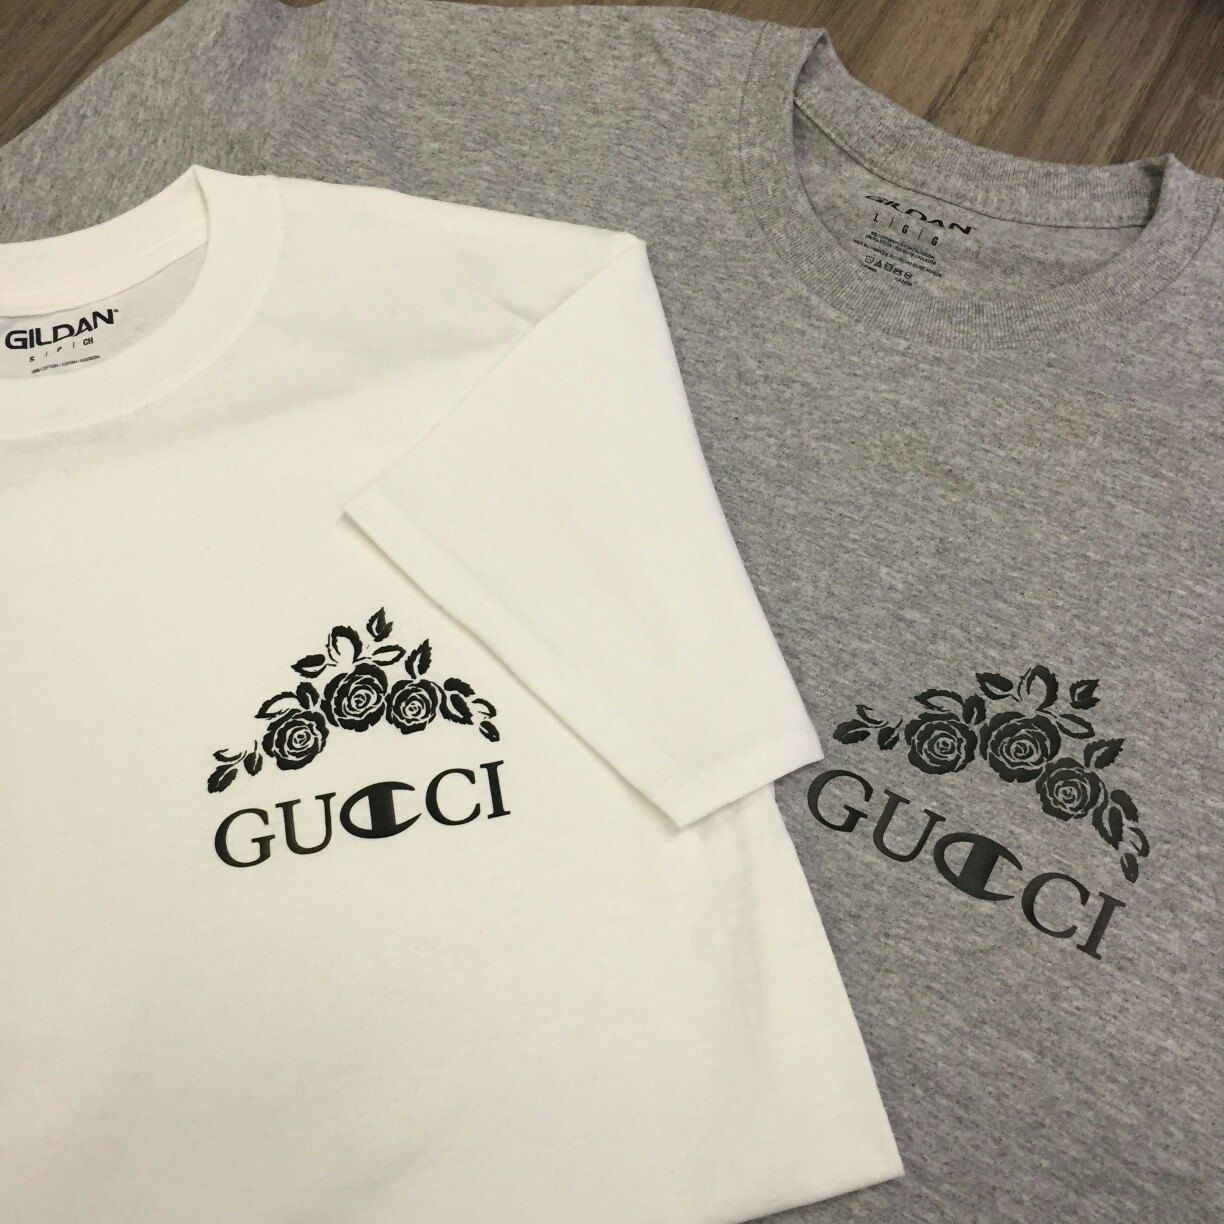 42a2906ee50 Floral Gucci X Champion logo t-shirt in grey and white. Also available in  black.  gucci  guccigang